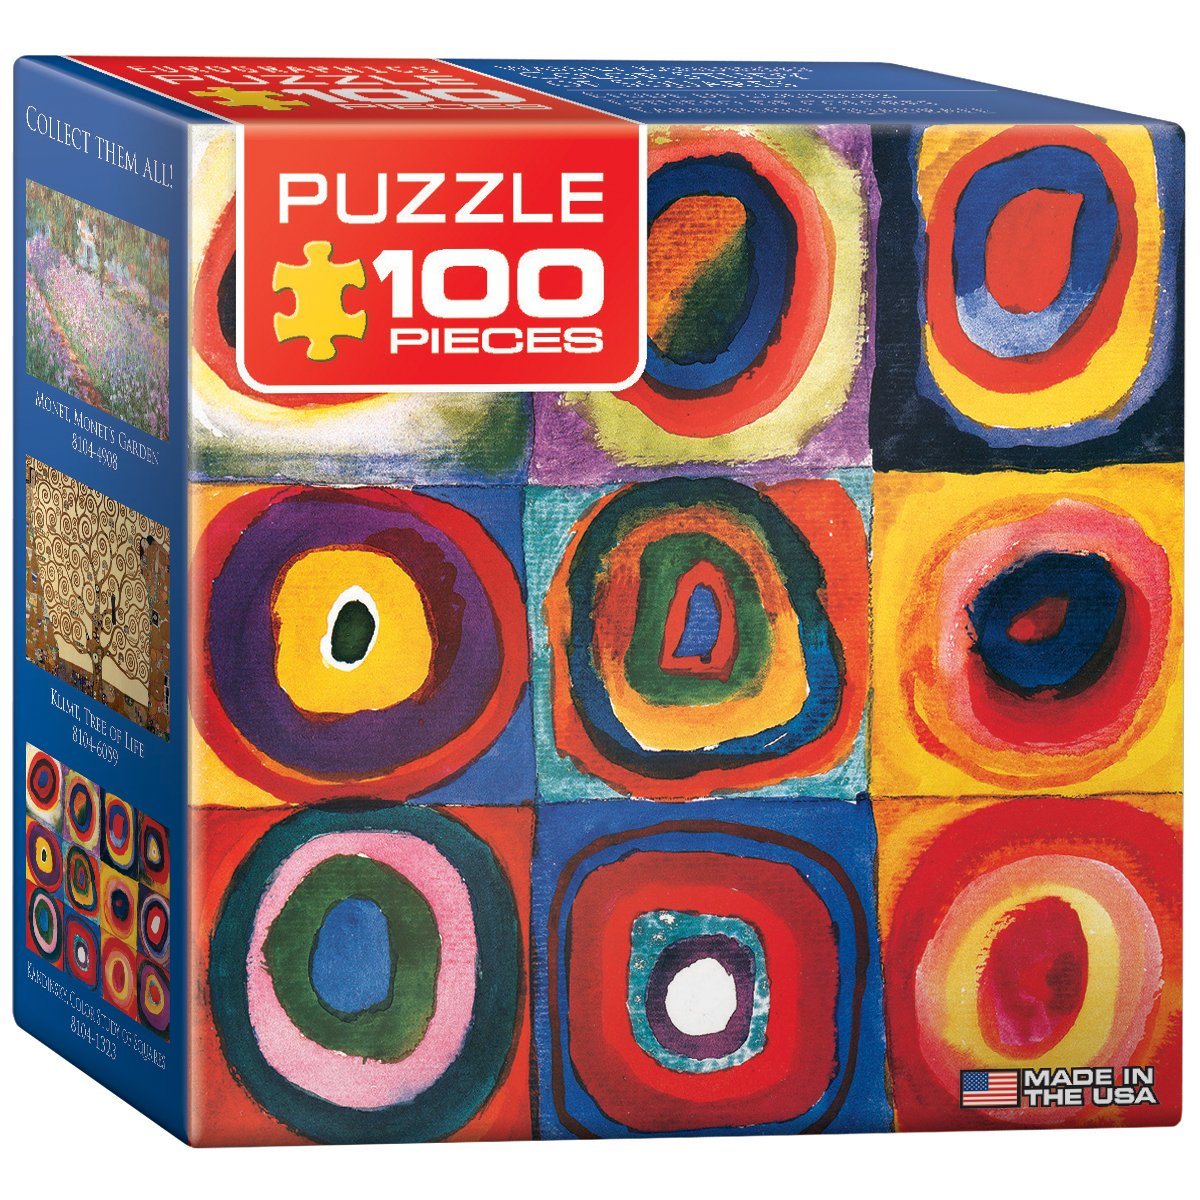 Playhouse Scratch /& Sniff Cookie 25-Piece Die Cut Shaped Mini Puzzle for Kids Paper House